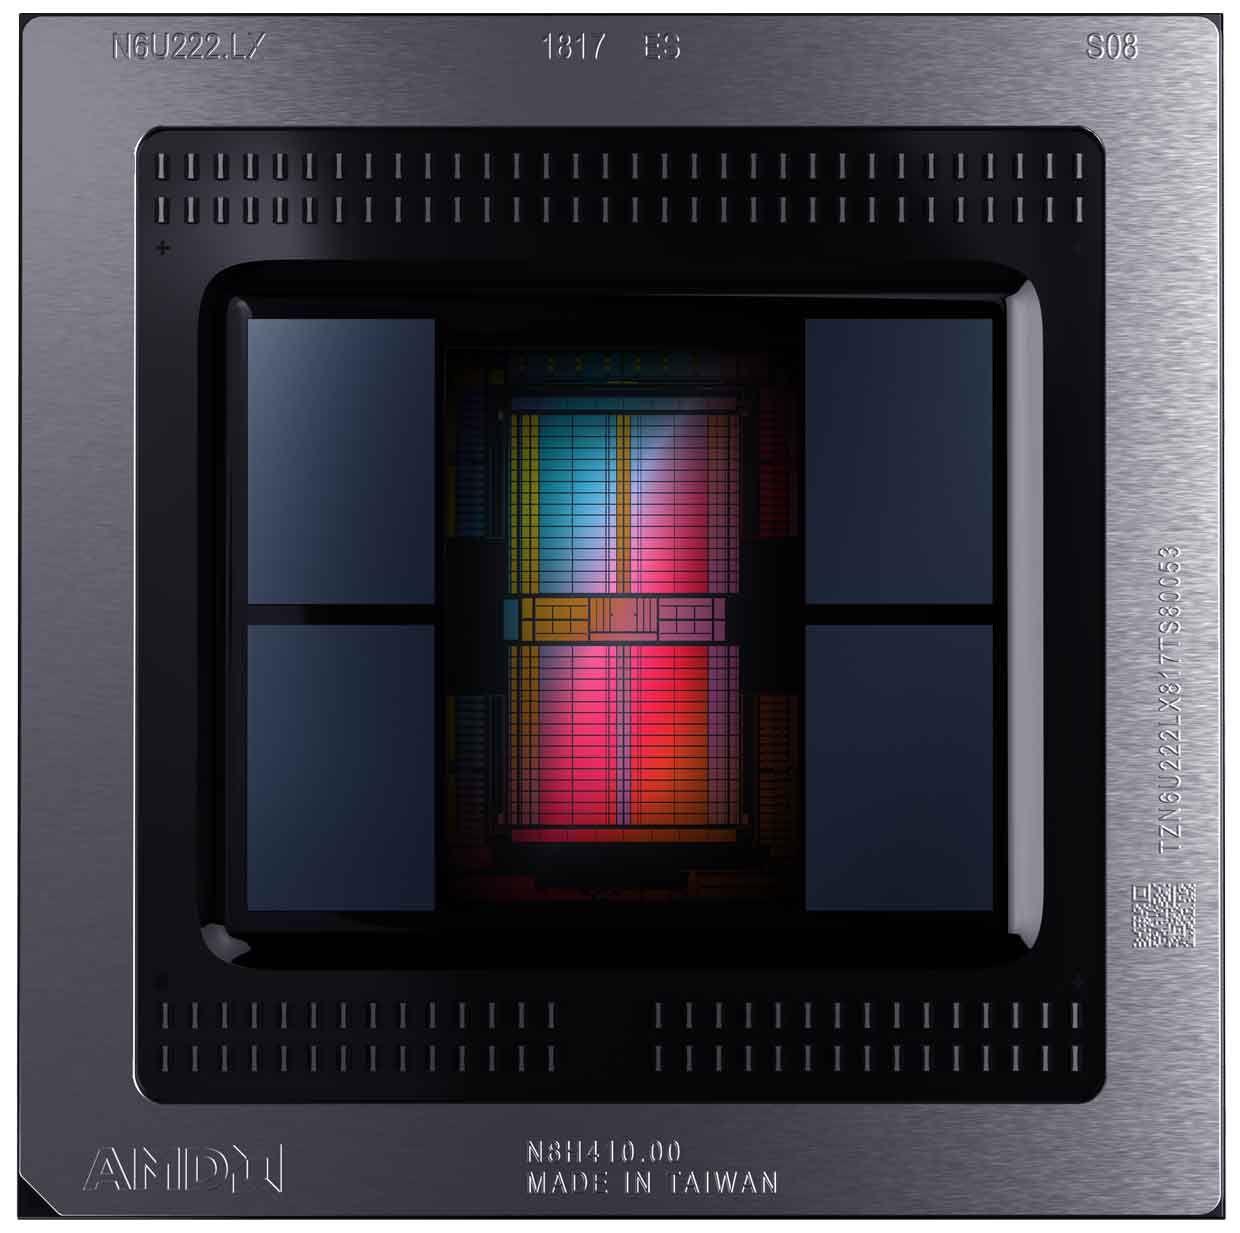 La Radeon VII d'AMD, carte graphique du Mac Pro 2019 ?